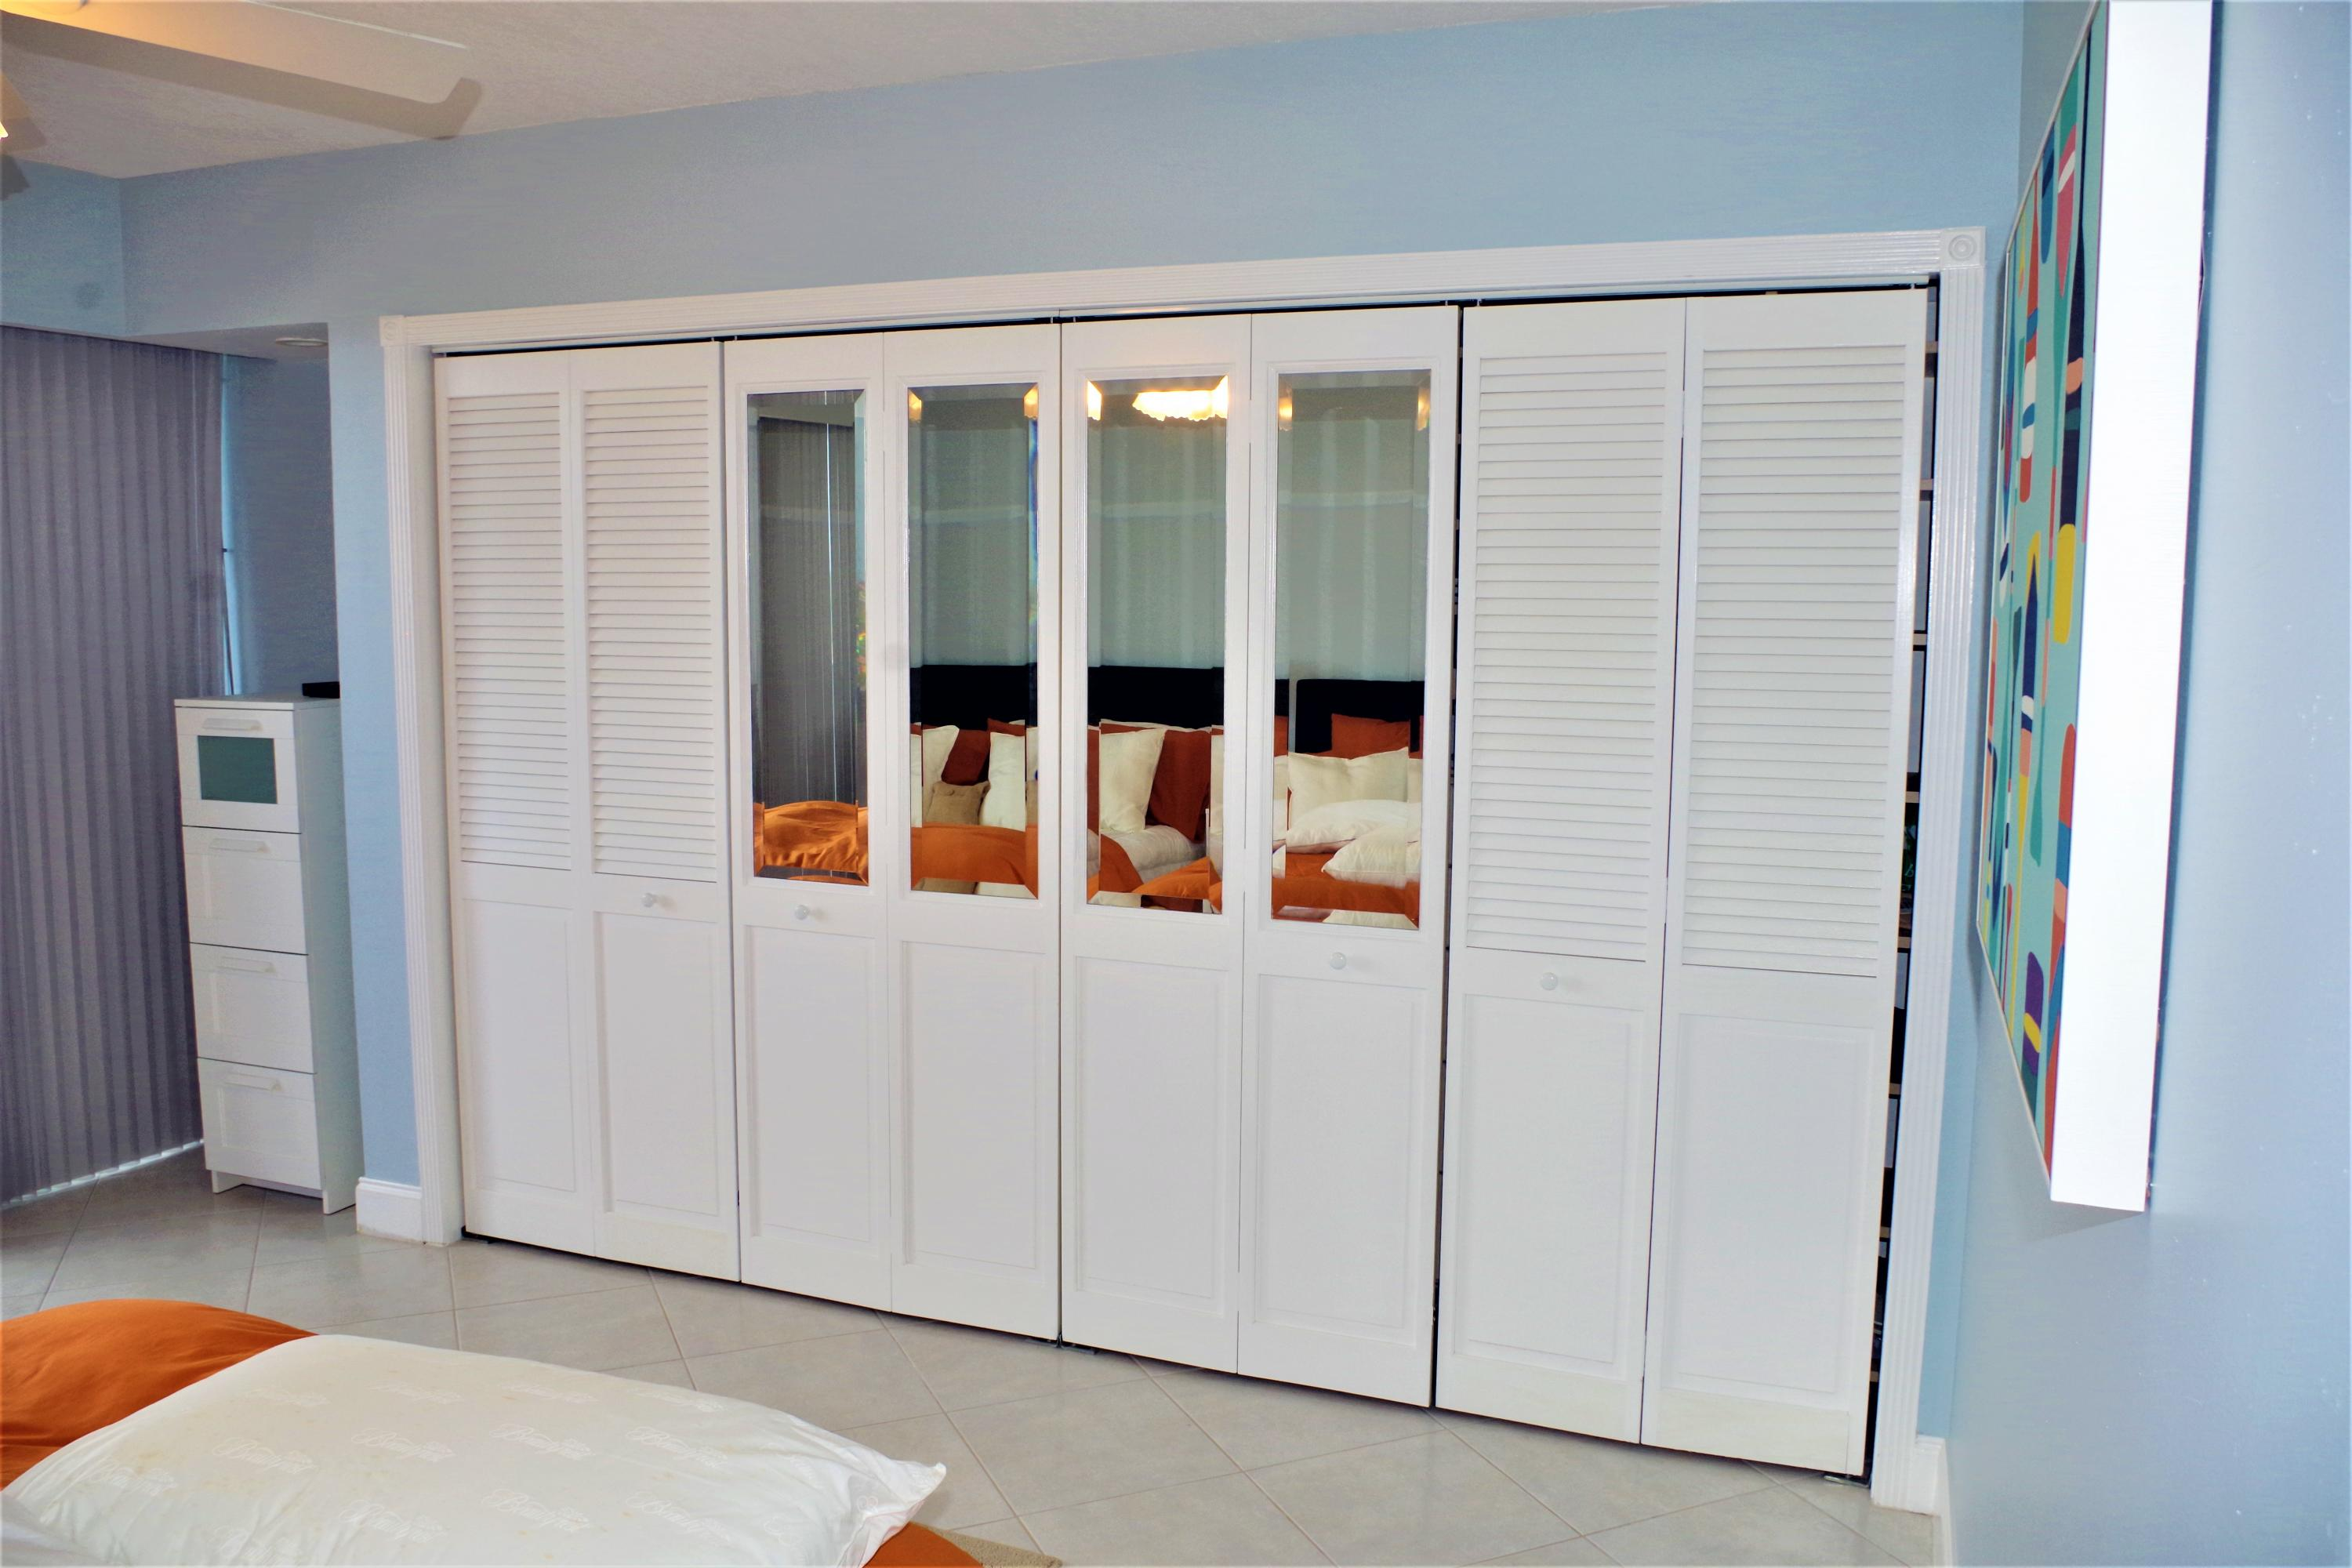 Second Bedroom Wall to Wall Closet